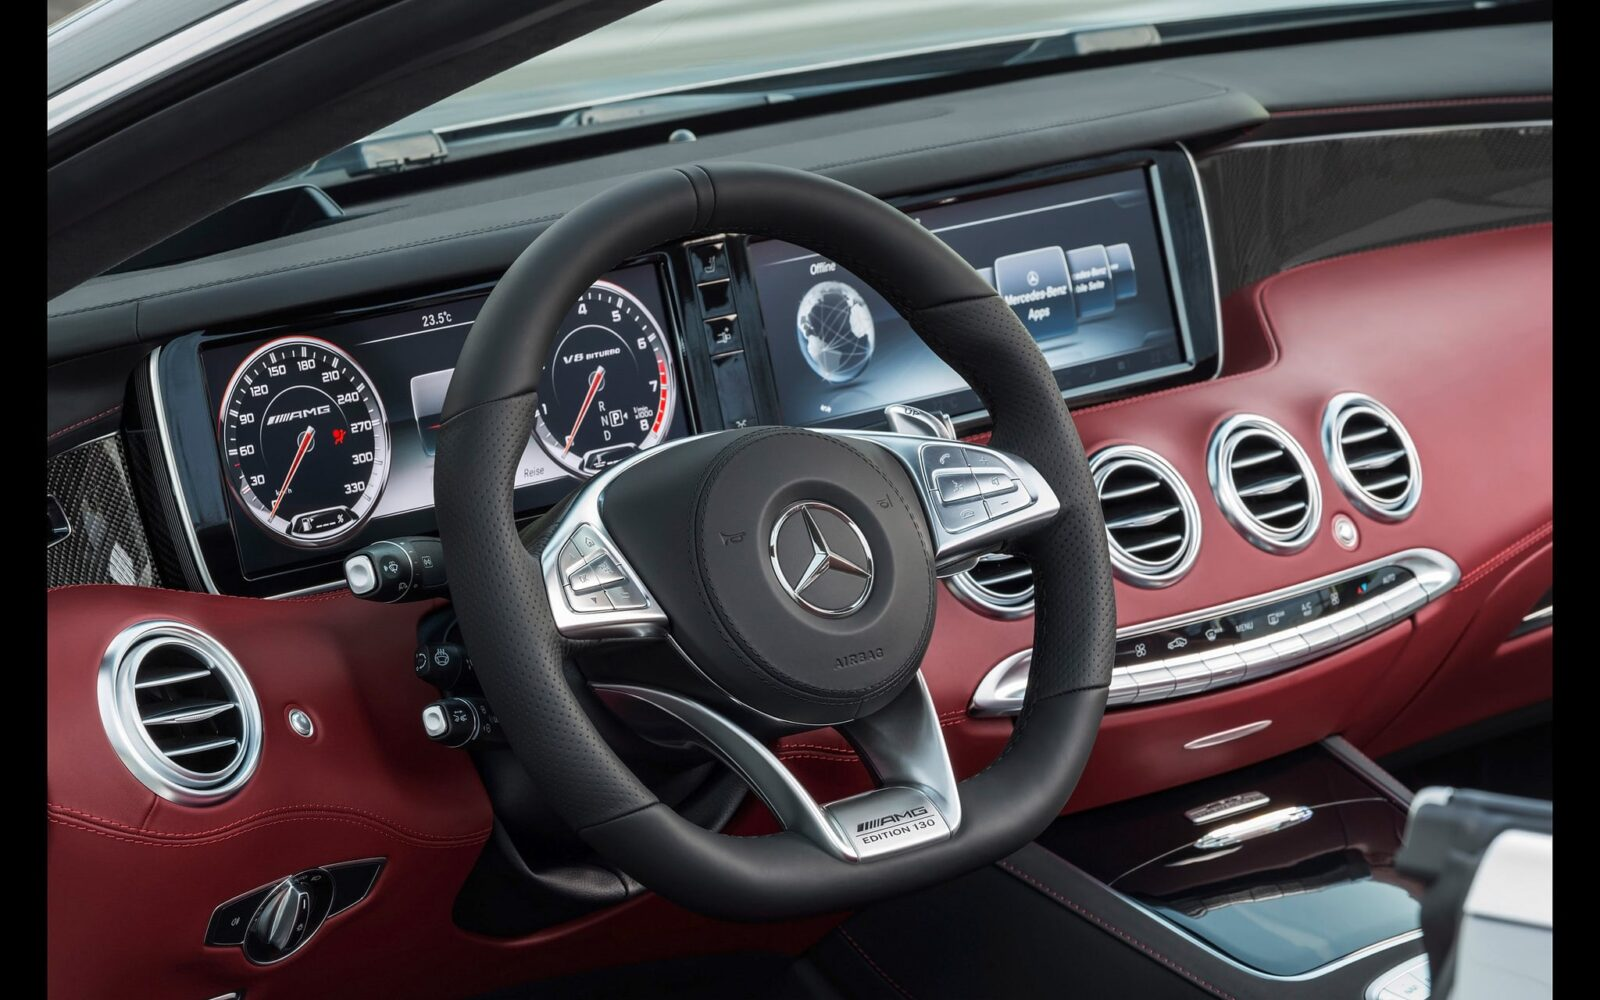 2016 Mercedes-AMG S63 cabriolet front panel wallpaper HD